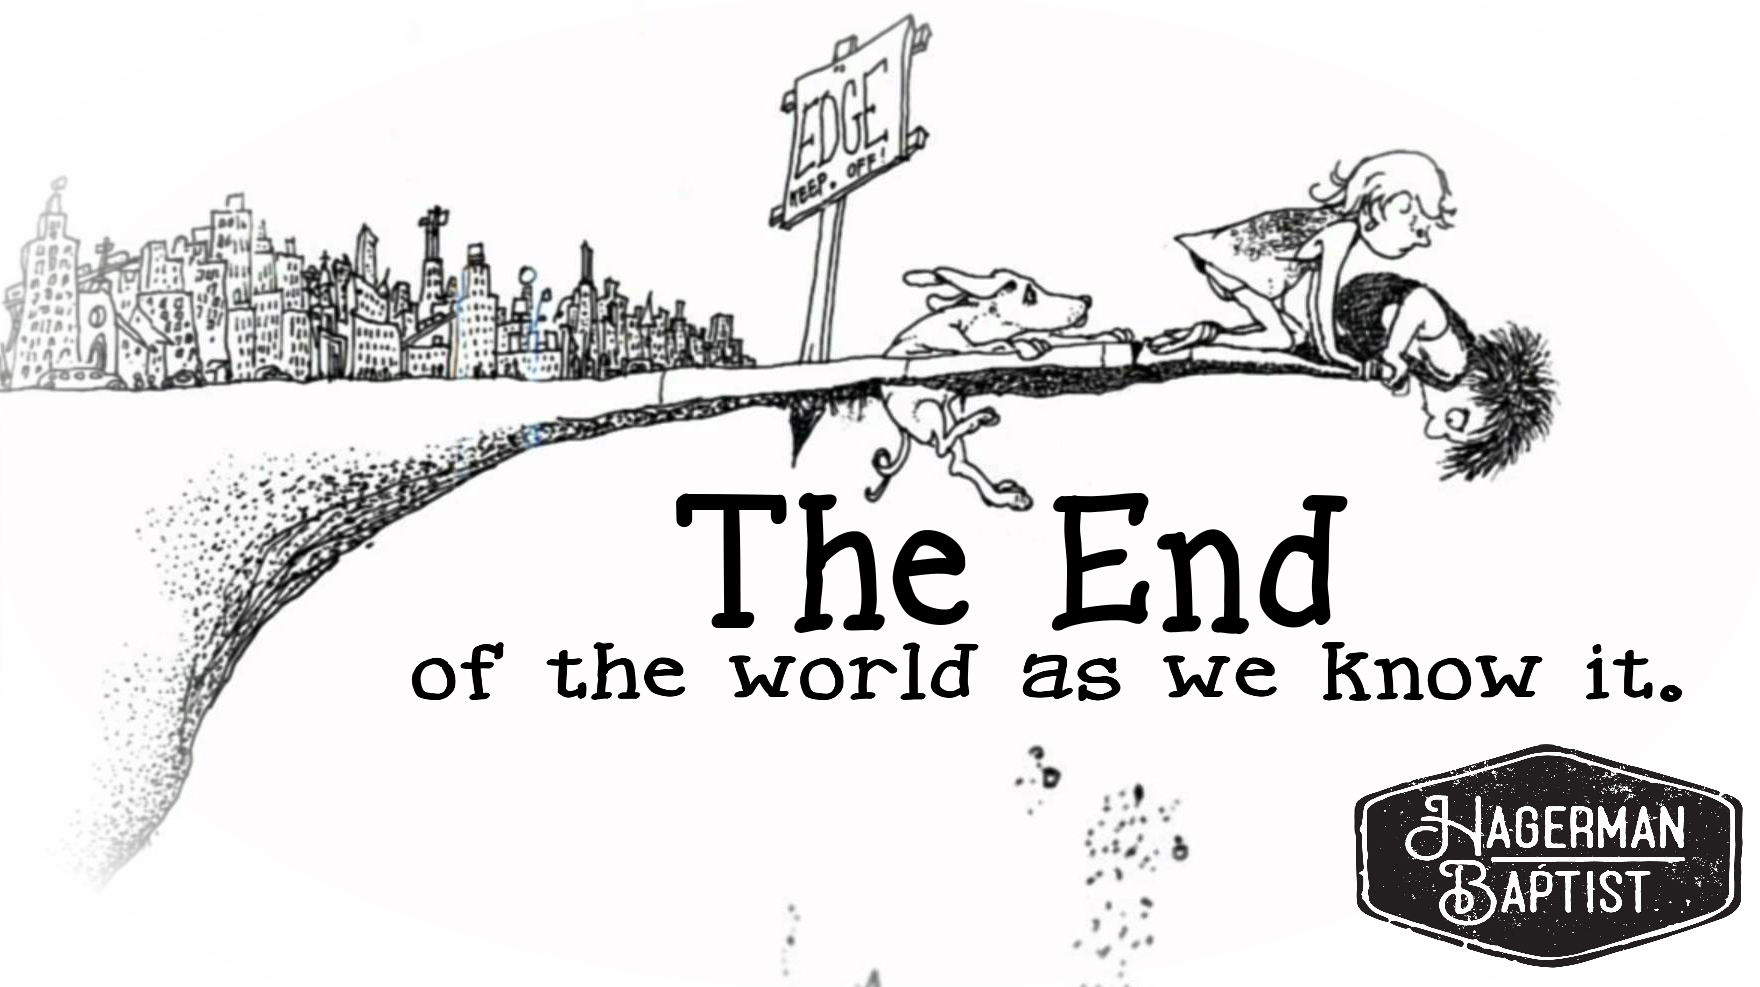 The End Of The World As We Know It Part 5 Hagerman